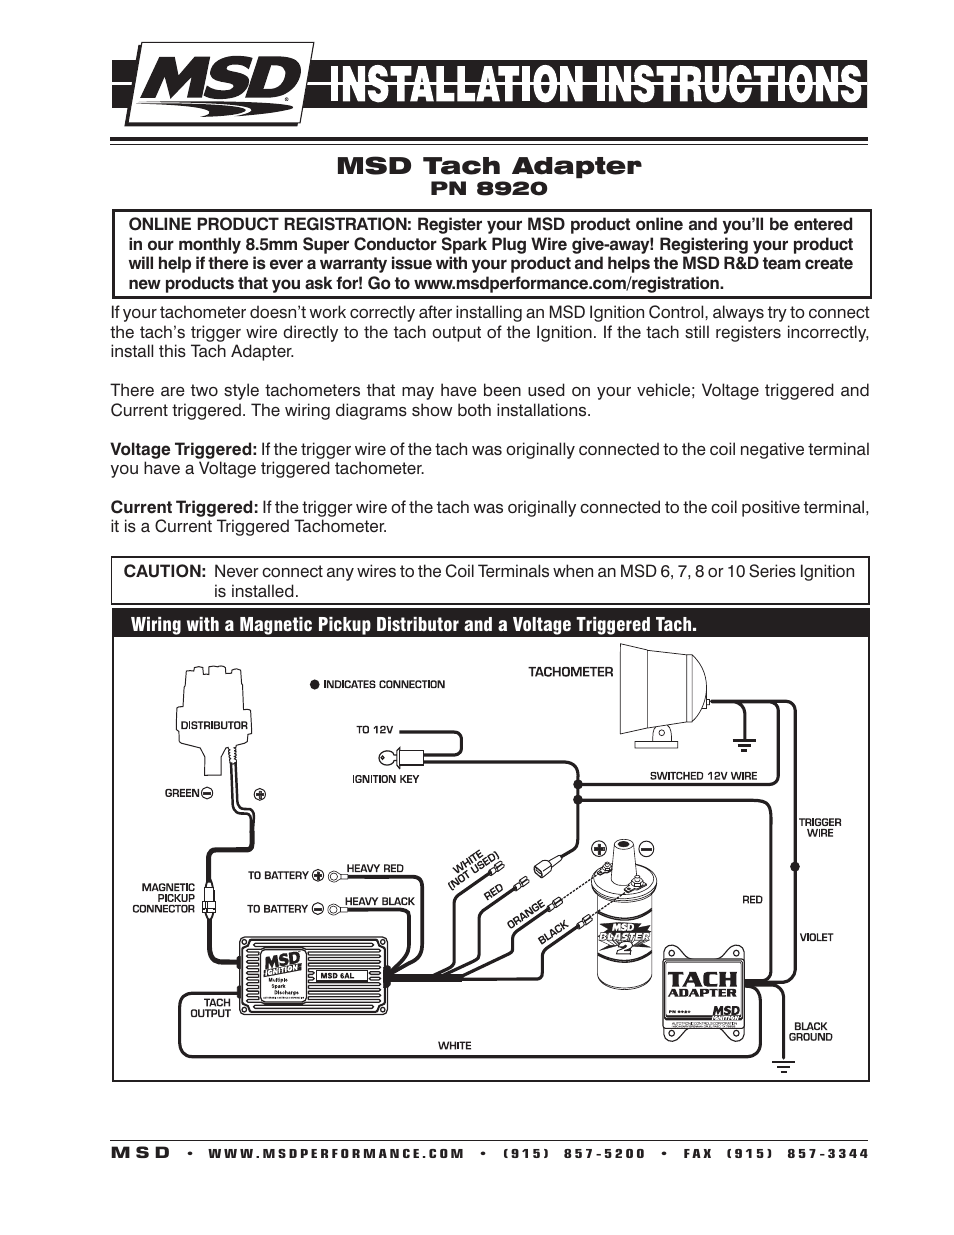 hight resolution of msd 8920 tach adapter magnetic trigger installation user manual 2 3 way switch wiring tel tach wiring diagram for msd